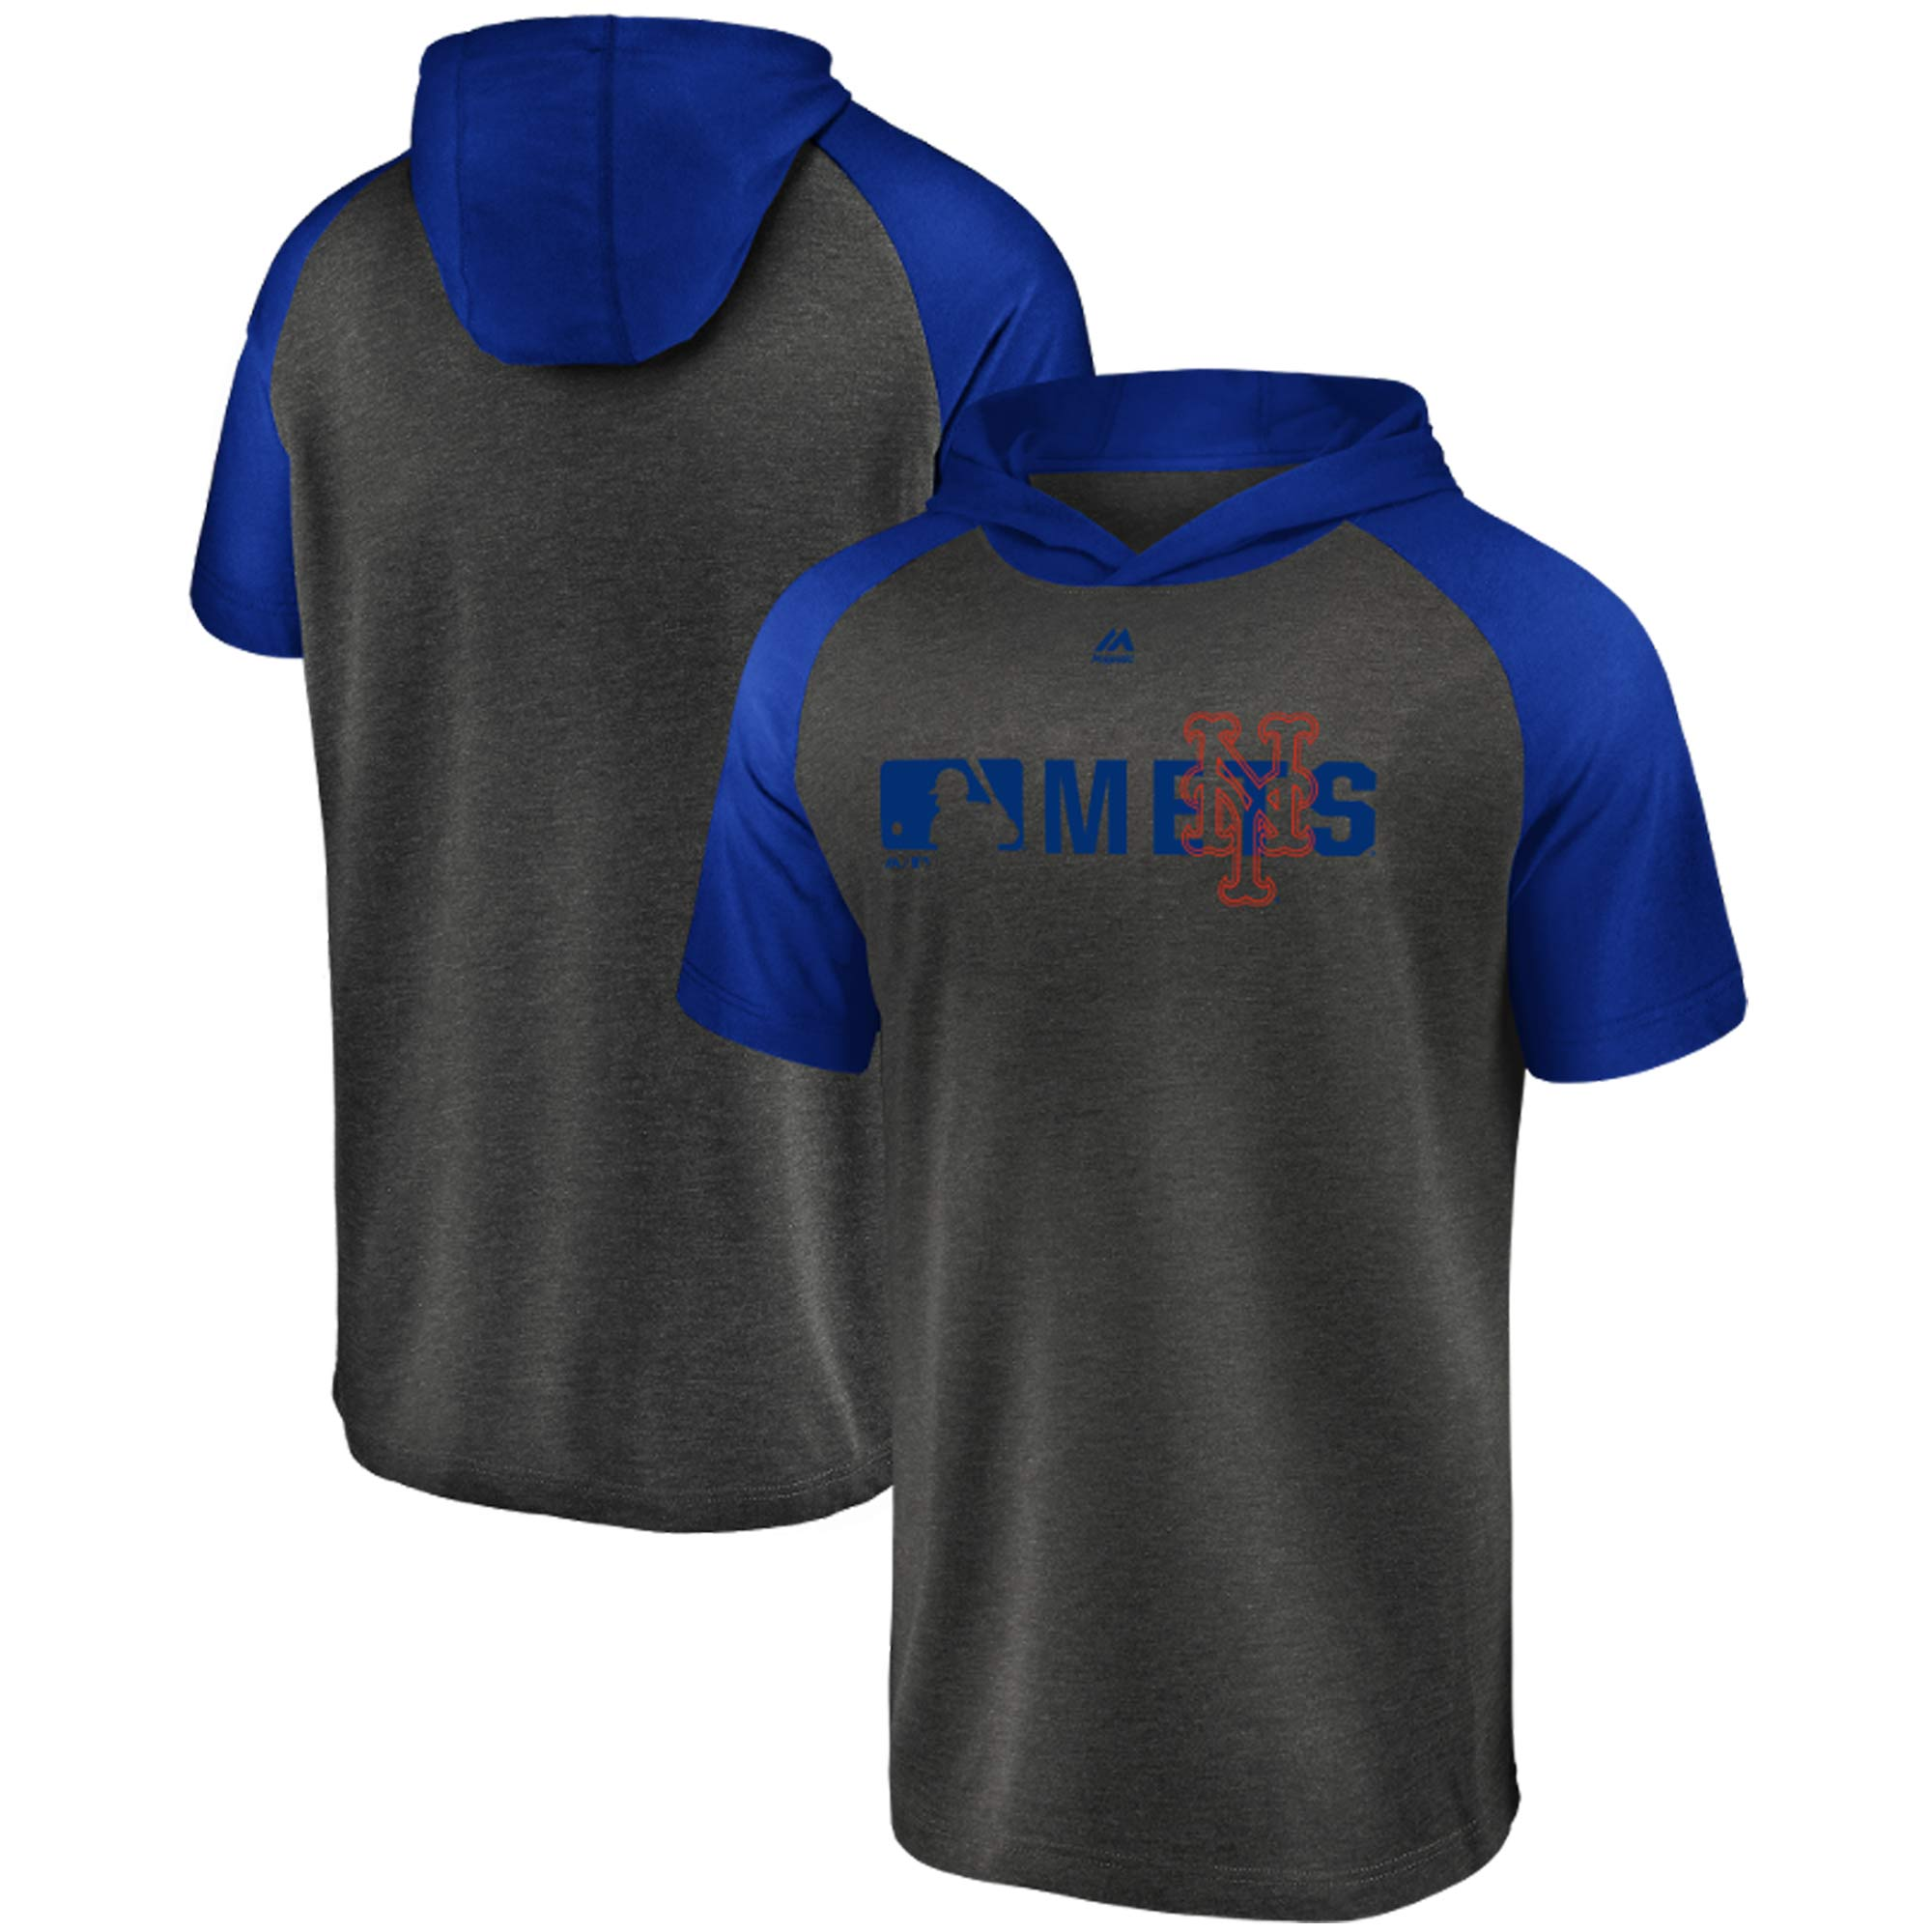 New York Mets Majestic Authentic Hooded Tri-Blend T-Shirt - Charcoal/Royal